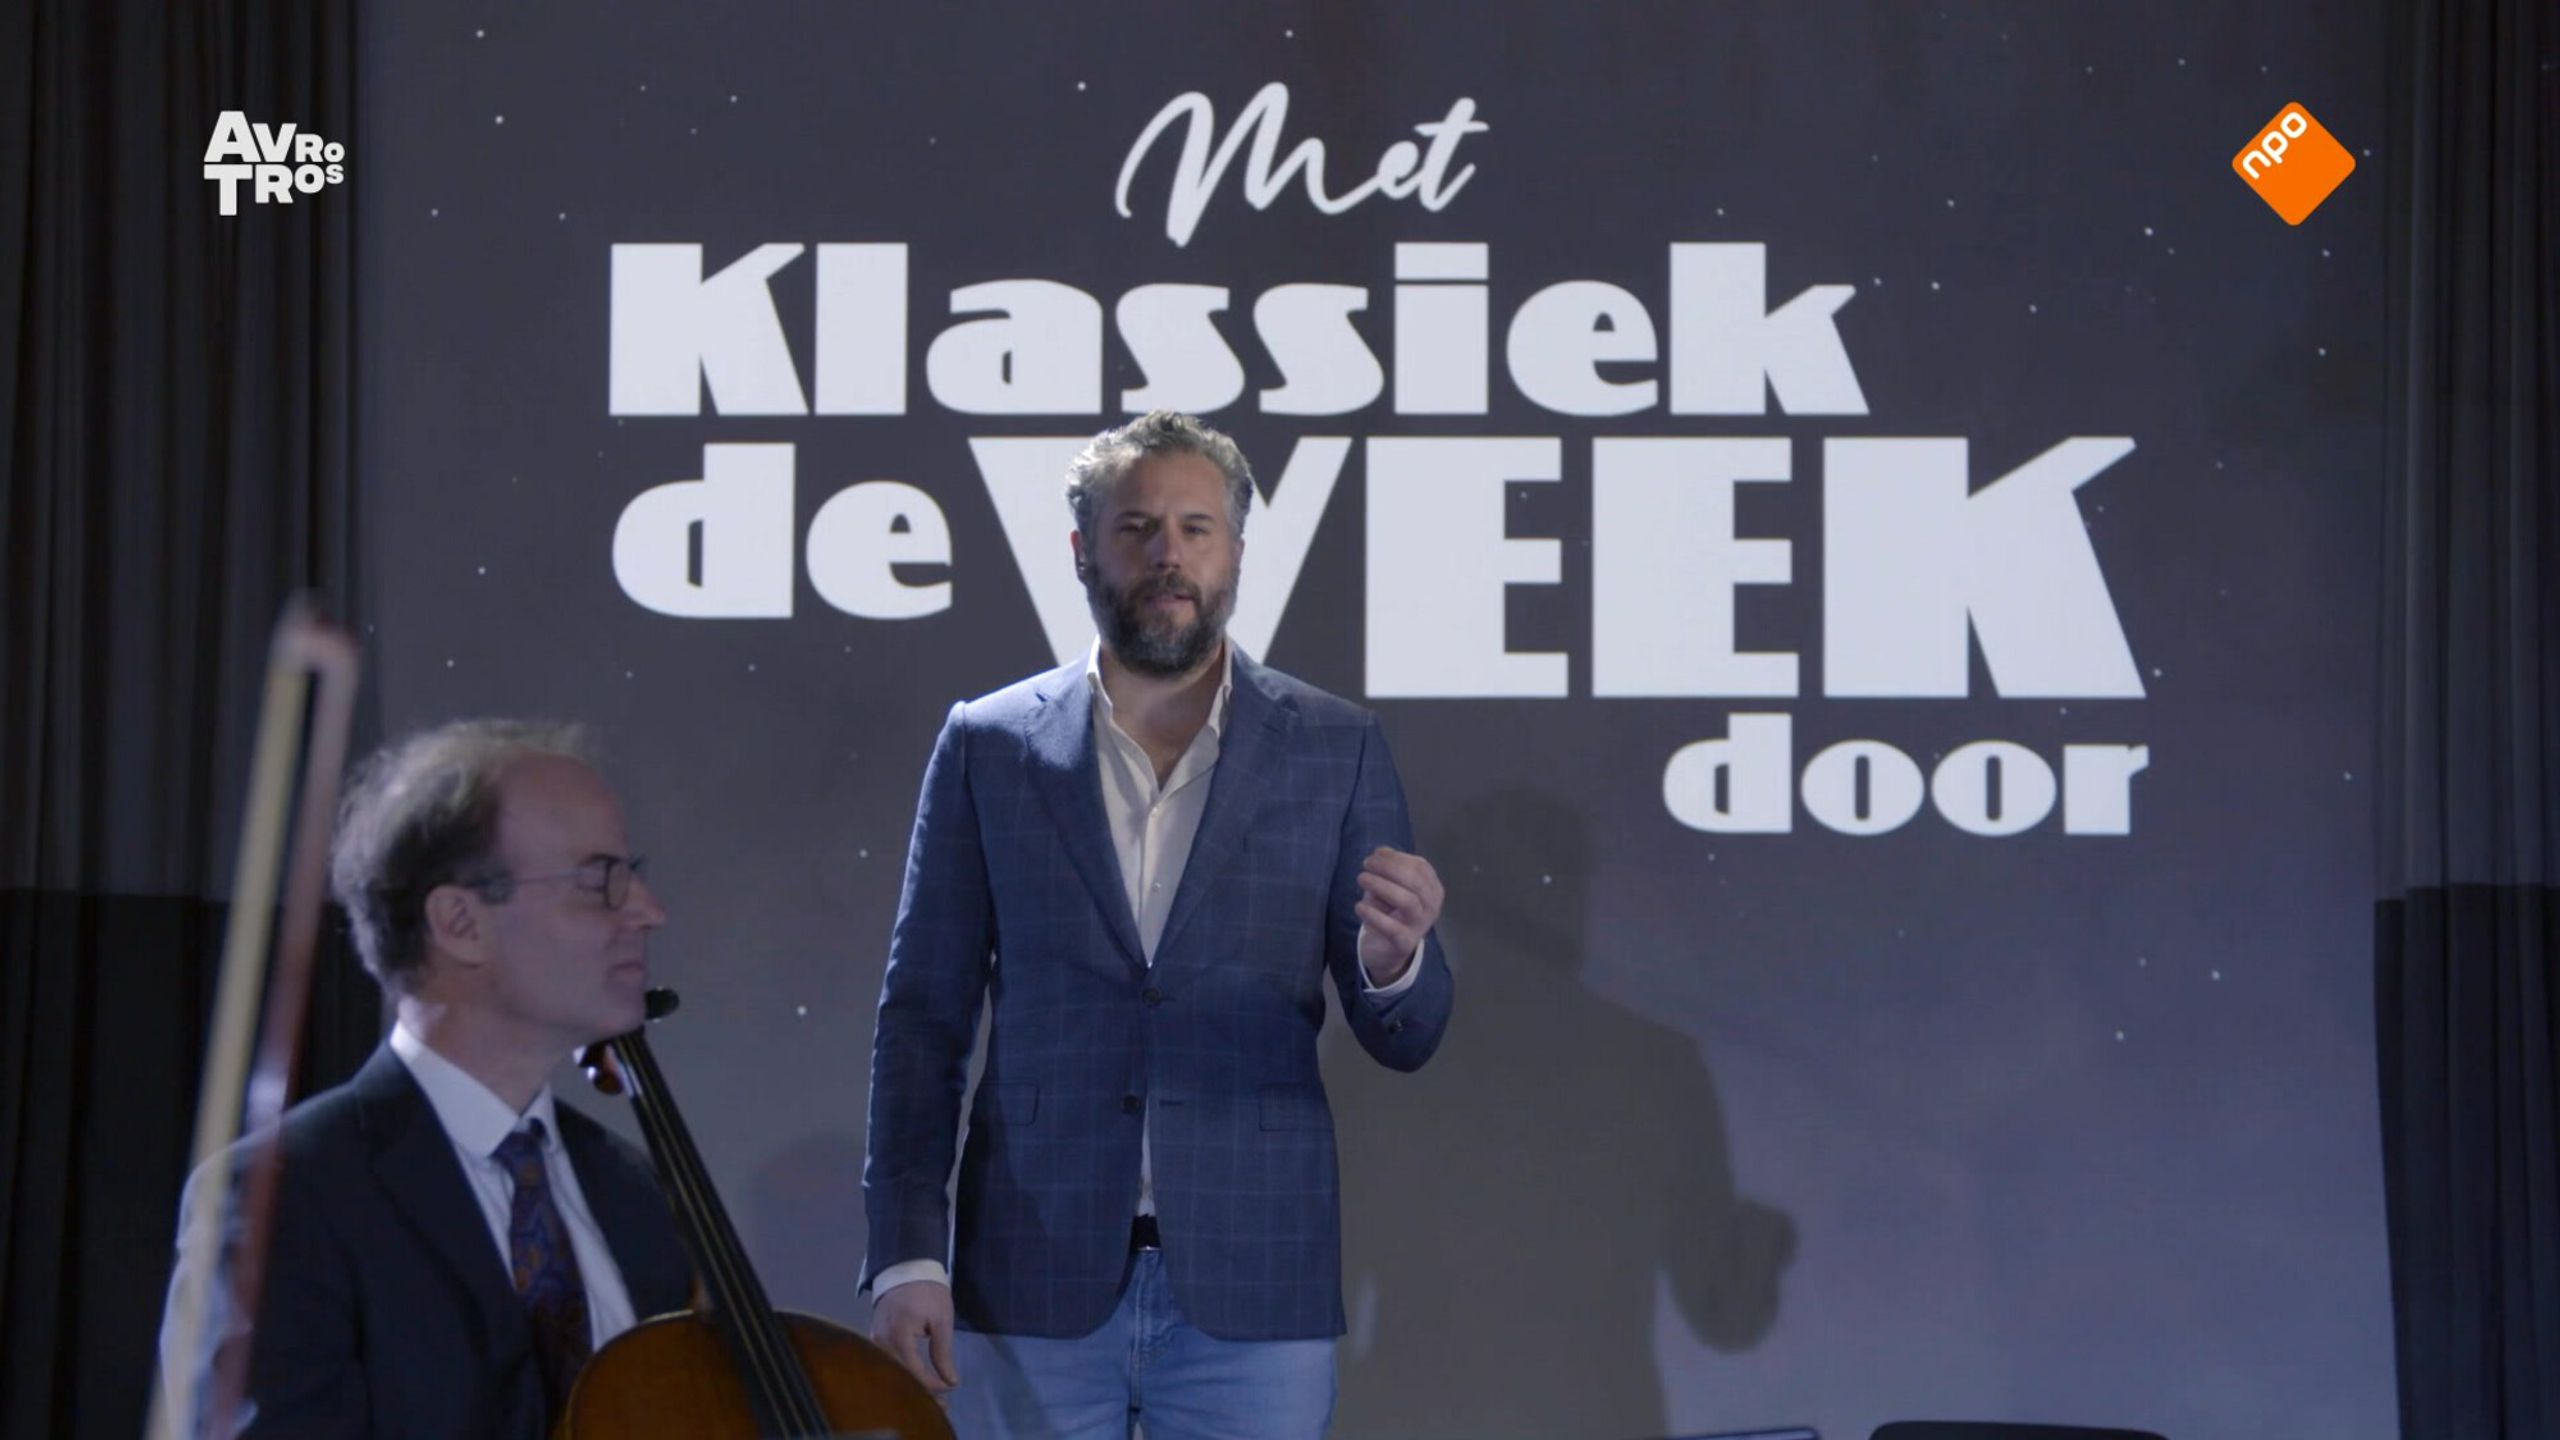 Met klassiek de week door